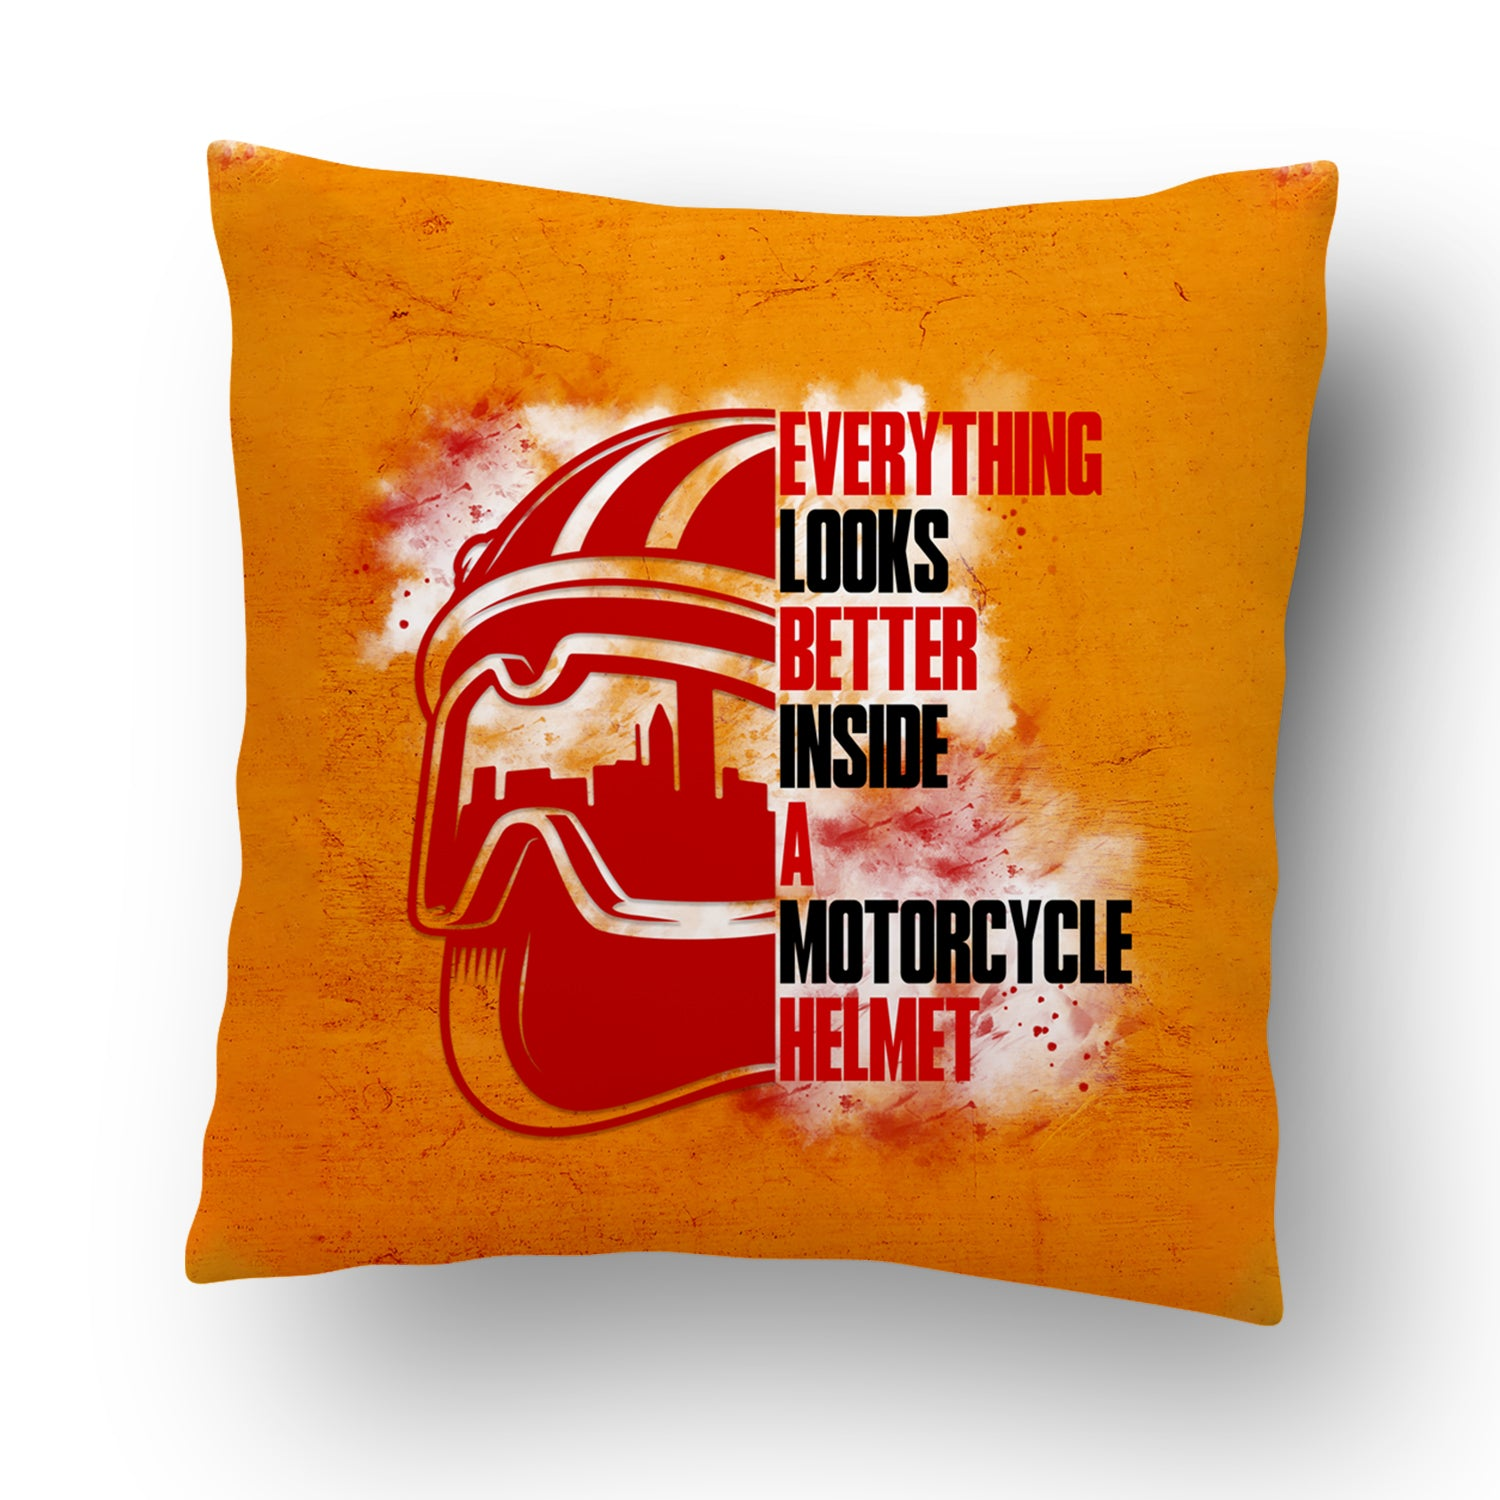 Everything looks better inside a motorcycle helmet Cushion